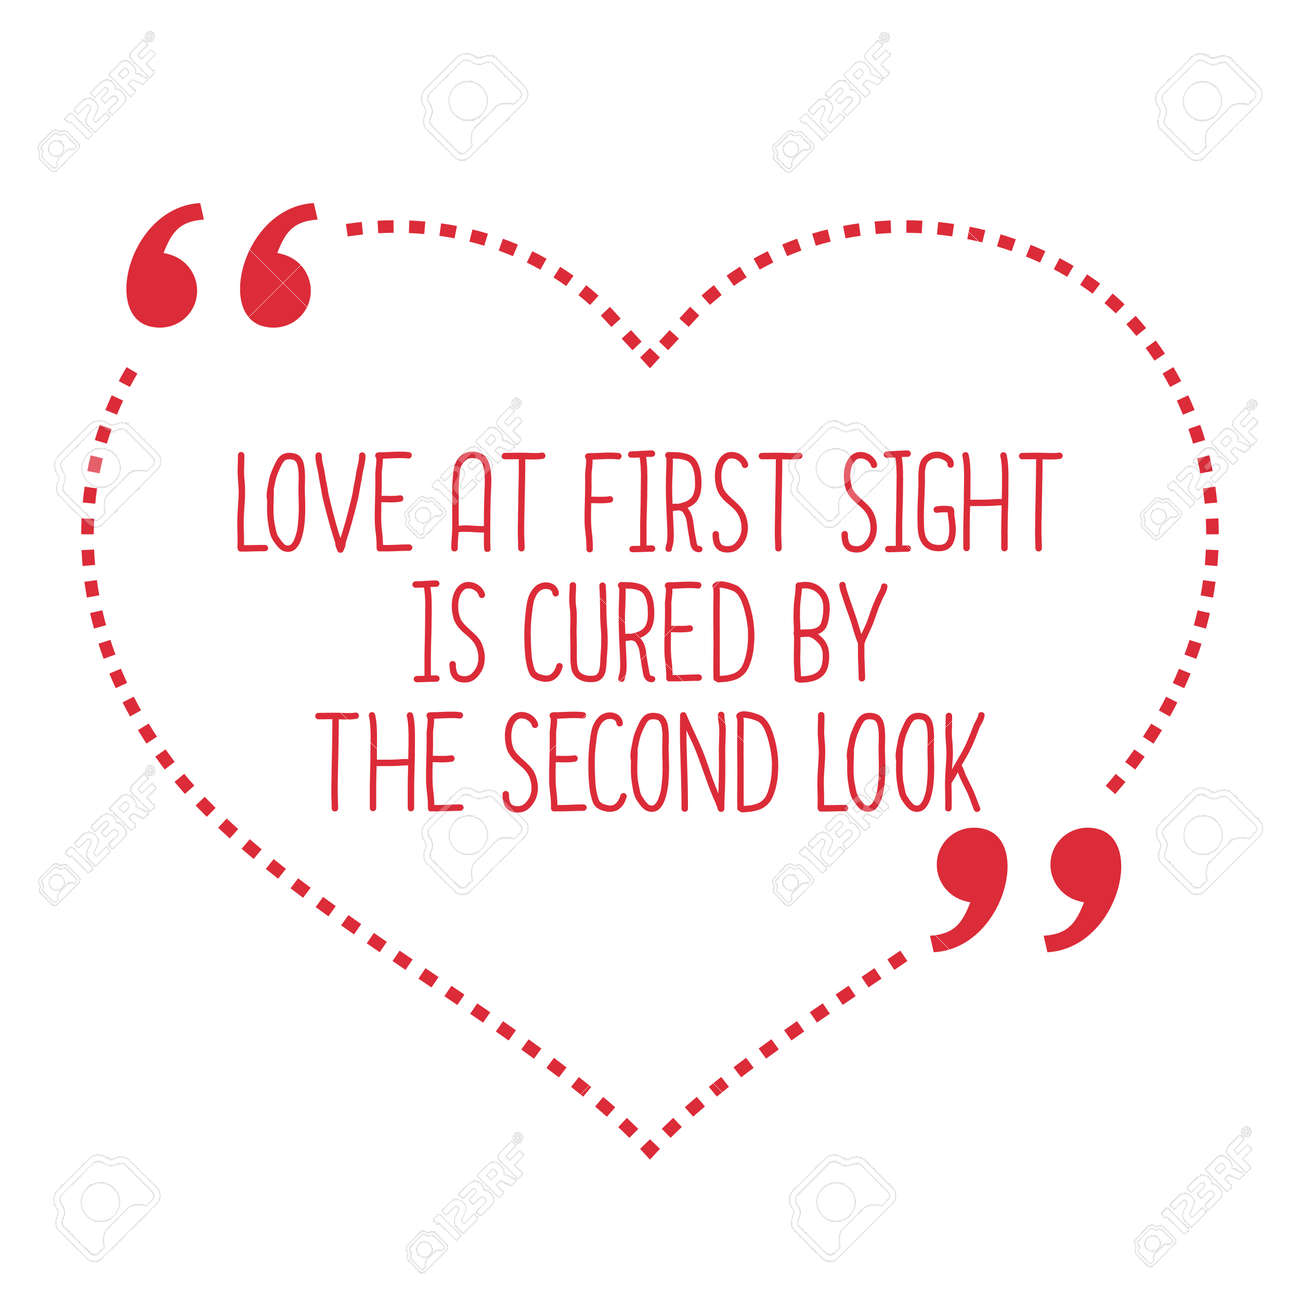 Quotes About Love At First Site Amusing Funny Love Quotelove At First Sight Is Curedthe Second